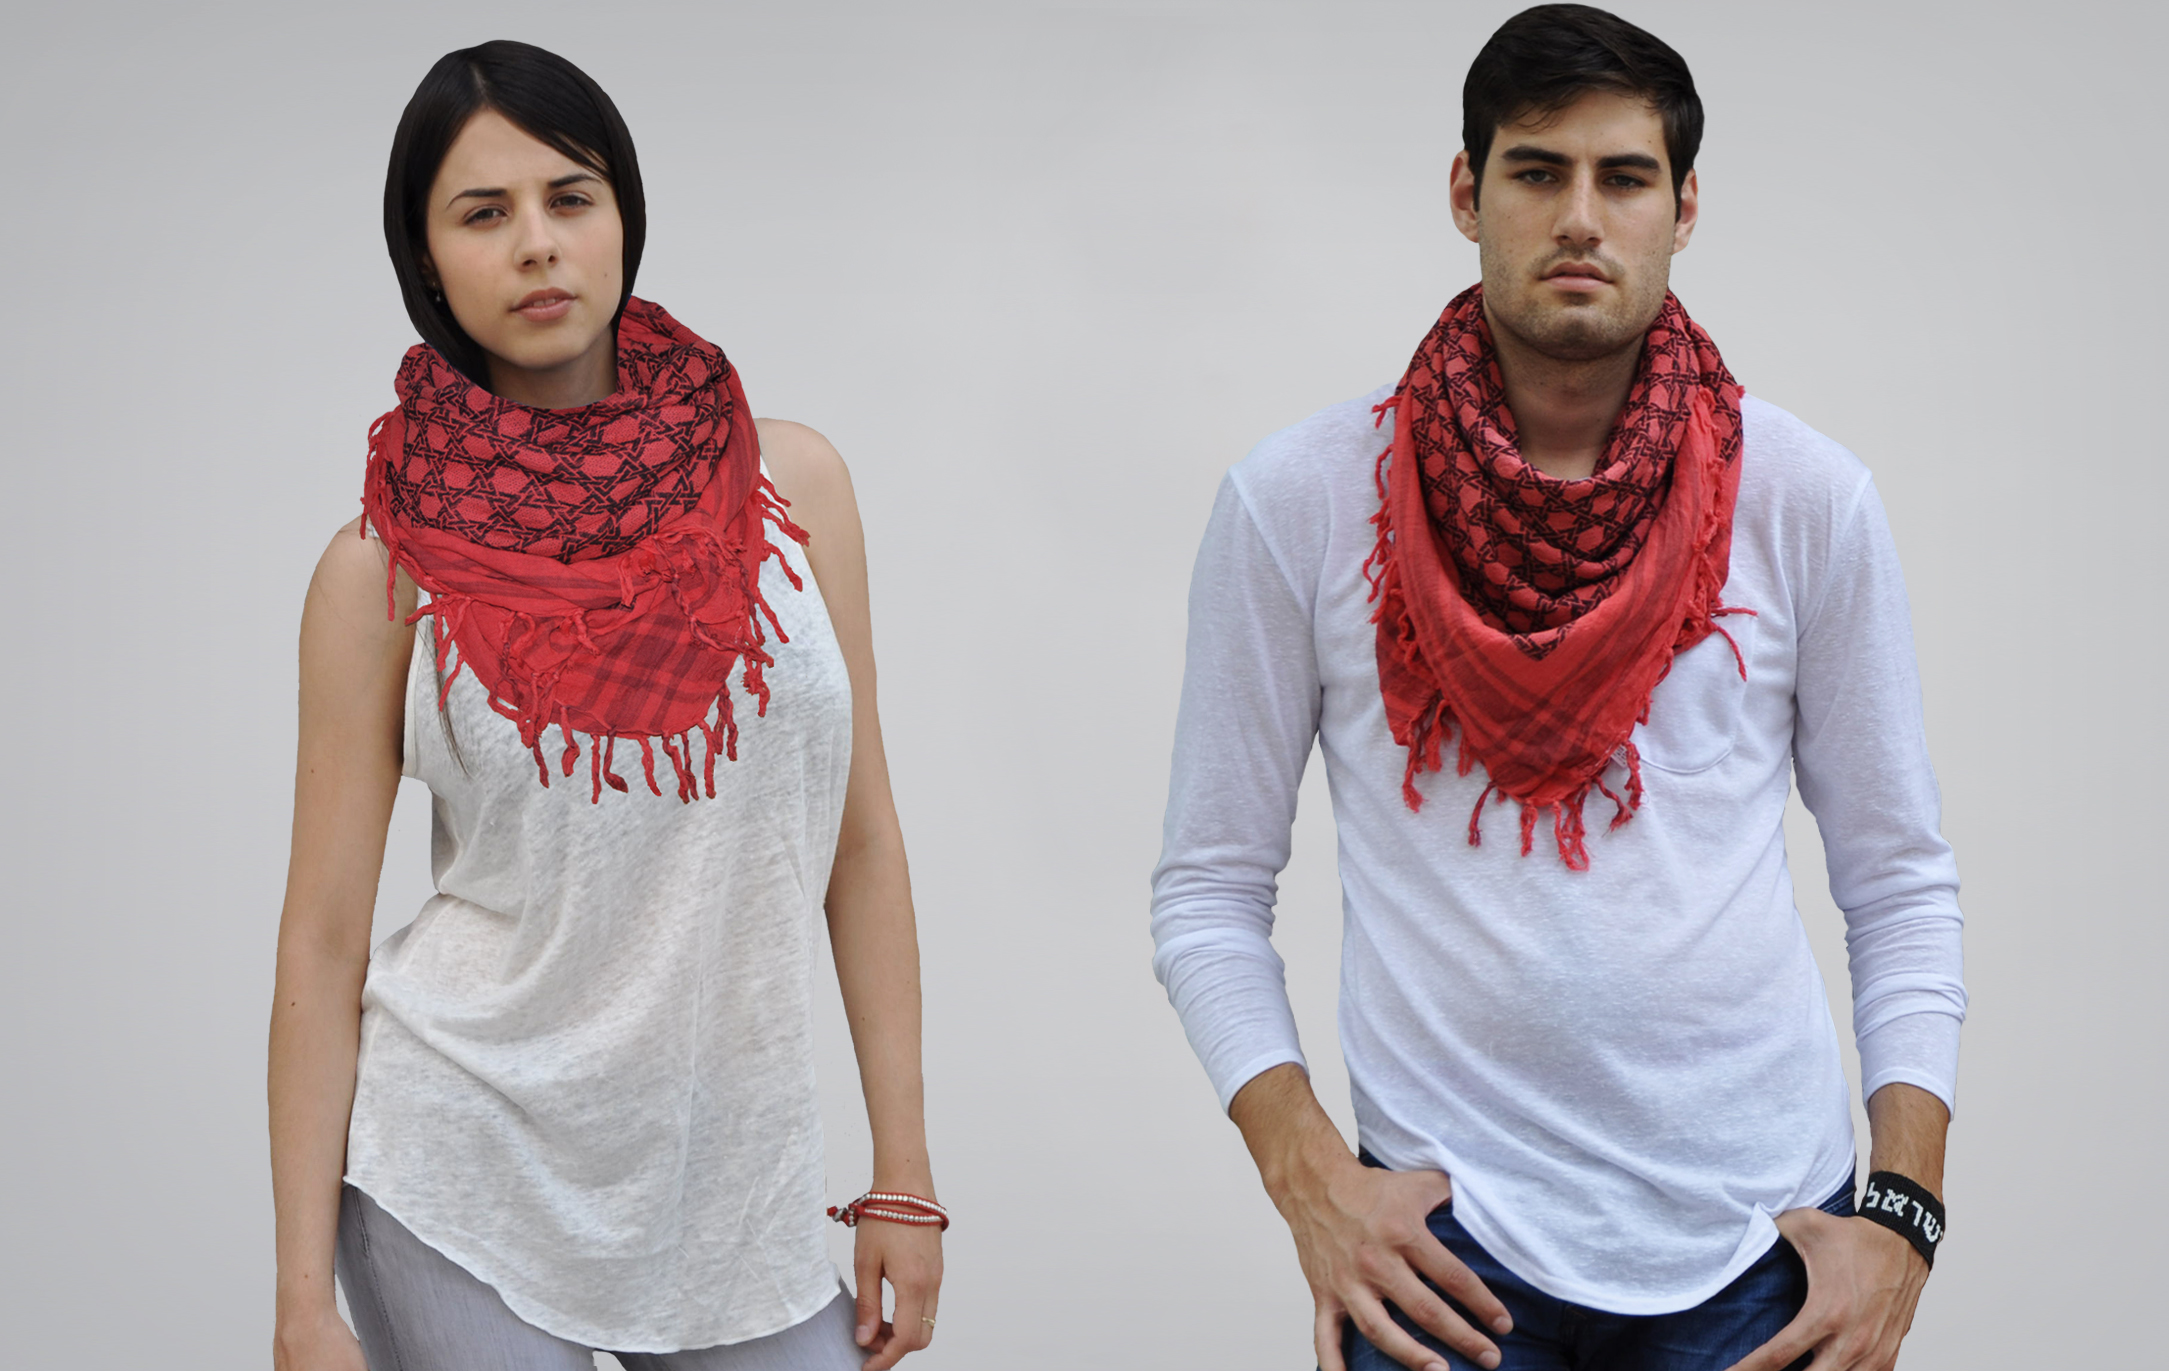 6 Facts About Keffiyeh Everyone Thinks Are True